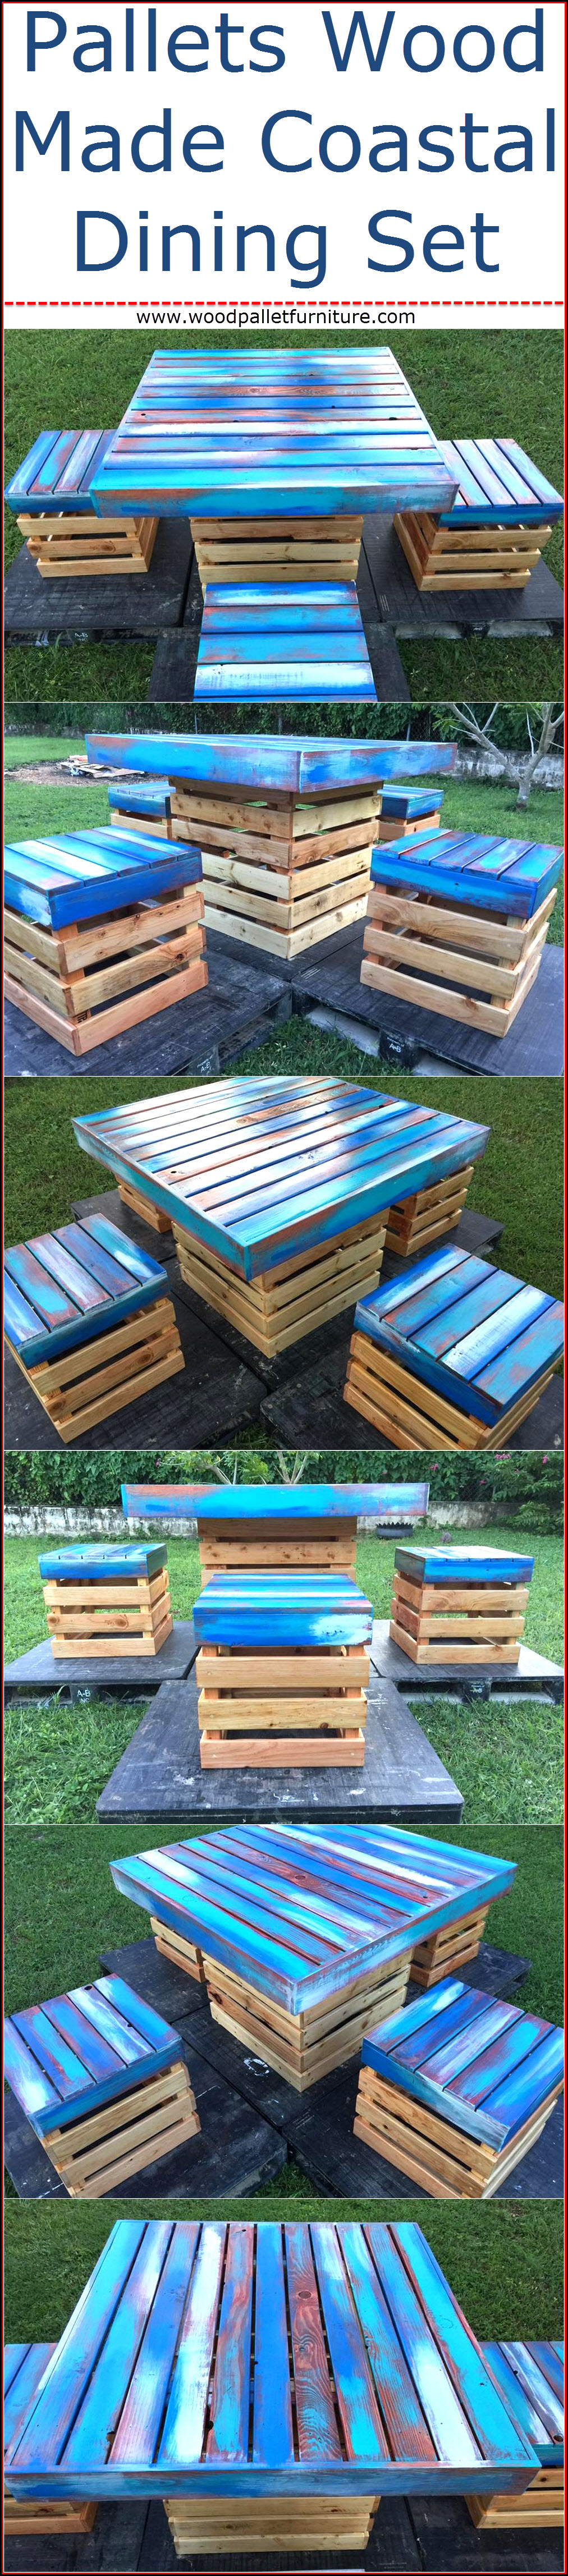 Pallets Wood Made Coastal Dining Set | Wood Pallet Furniture